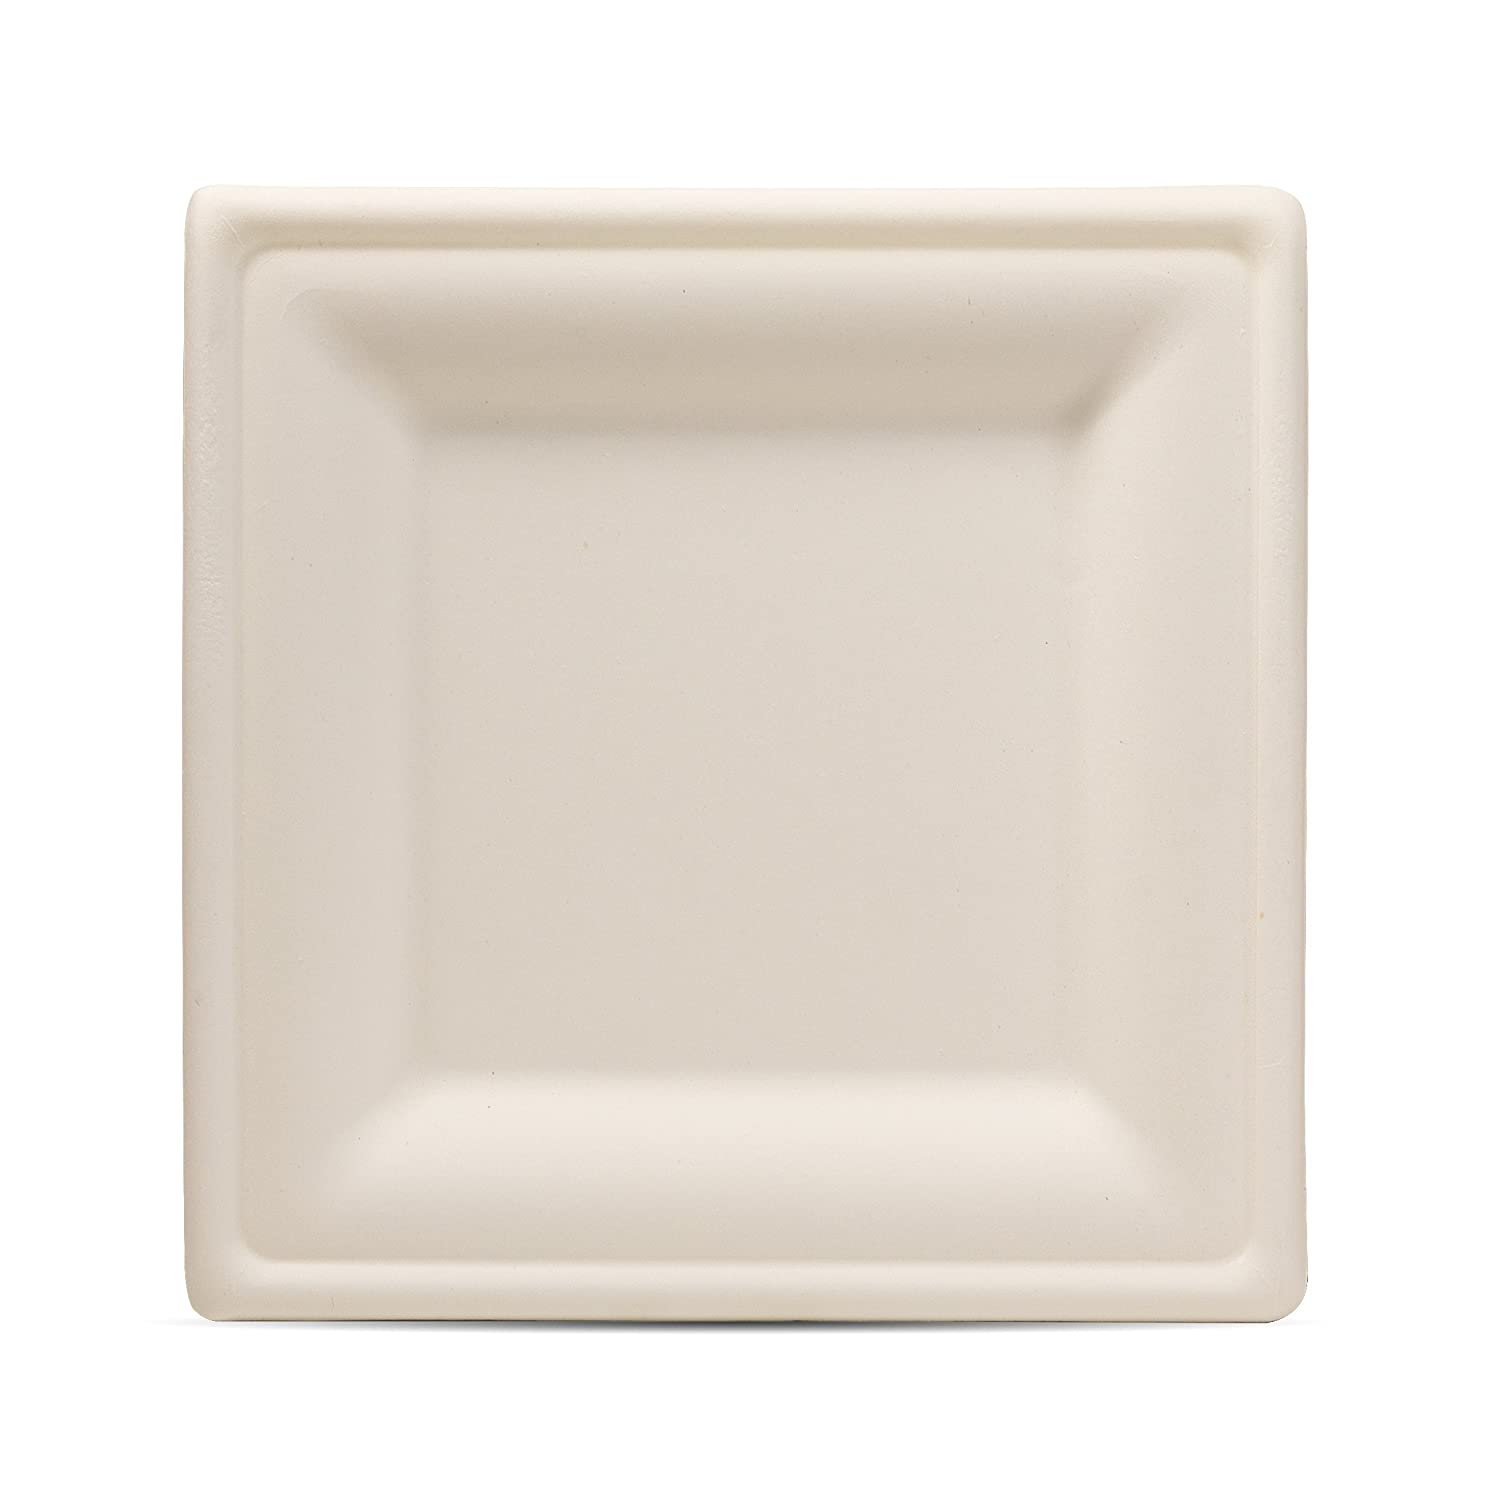 Select settings [100 COUNT] Microwaveable, compostable light brown square bowls (16 oz.) made from bagasse (sugarcane fiber)